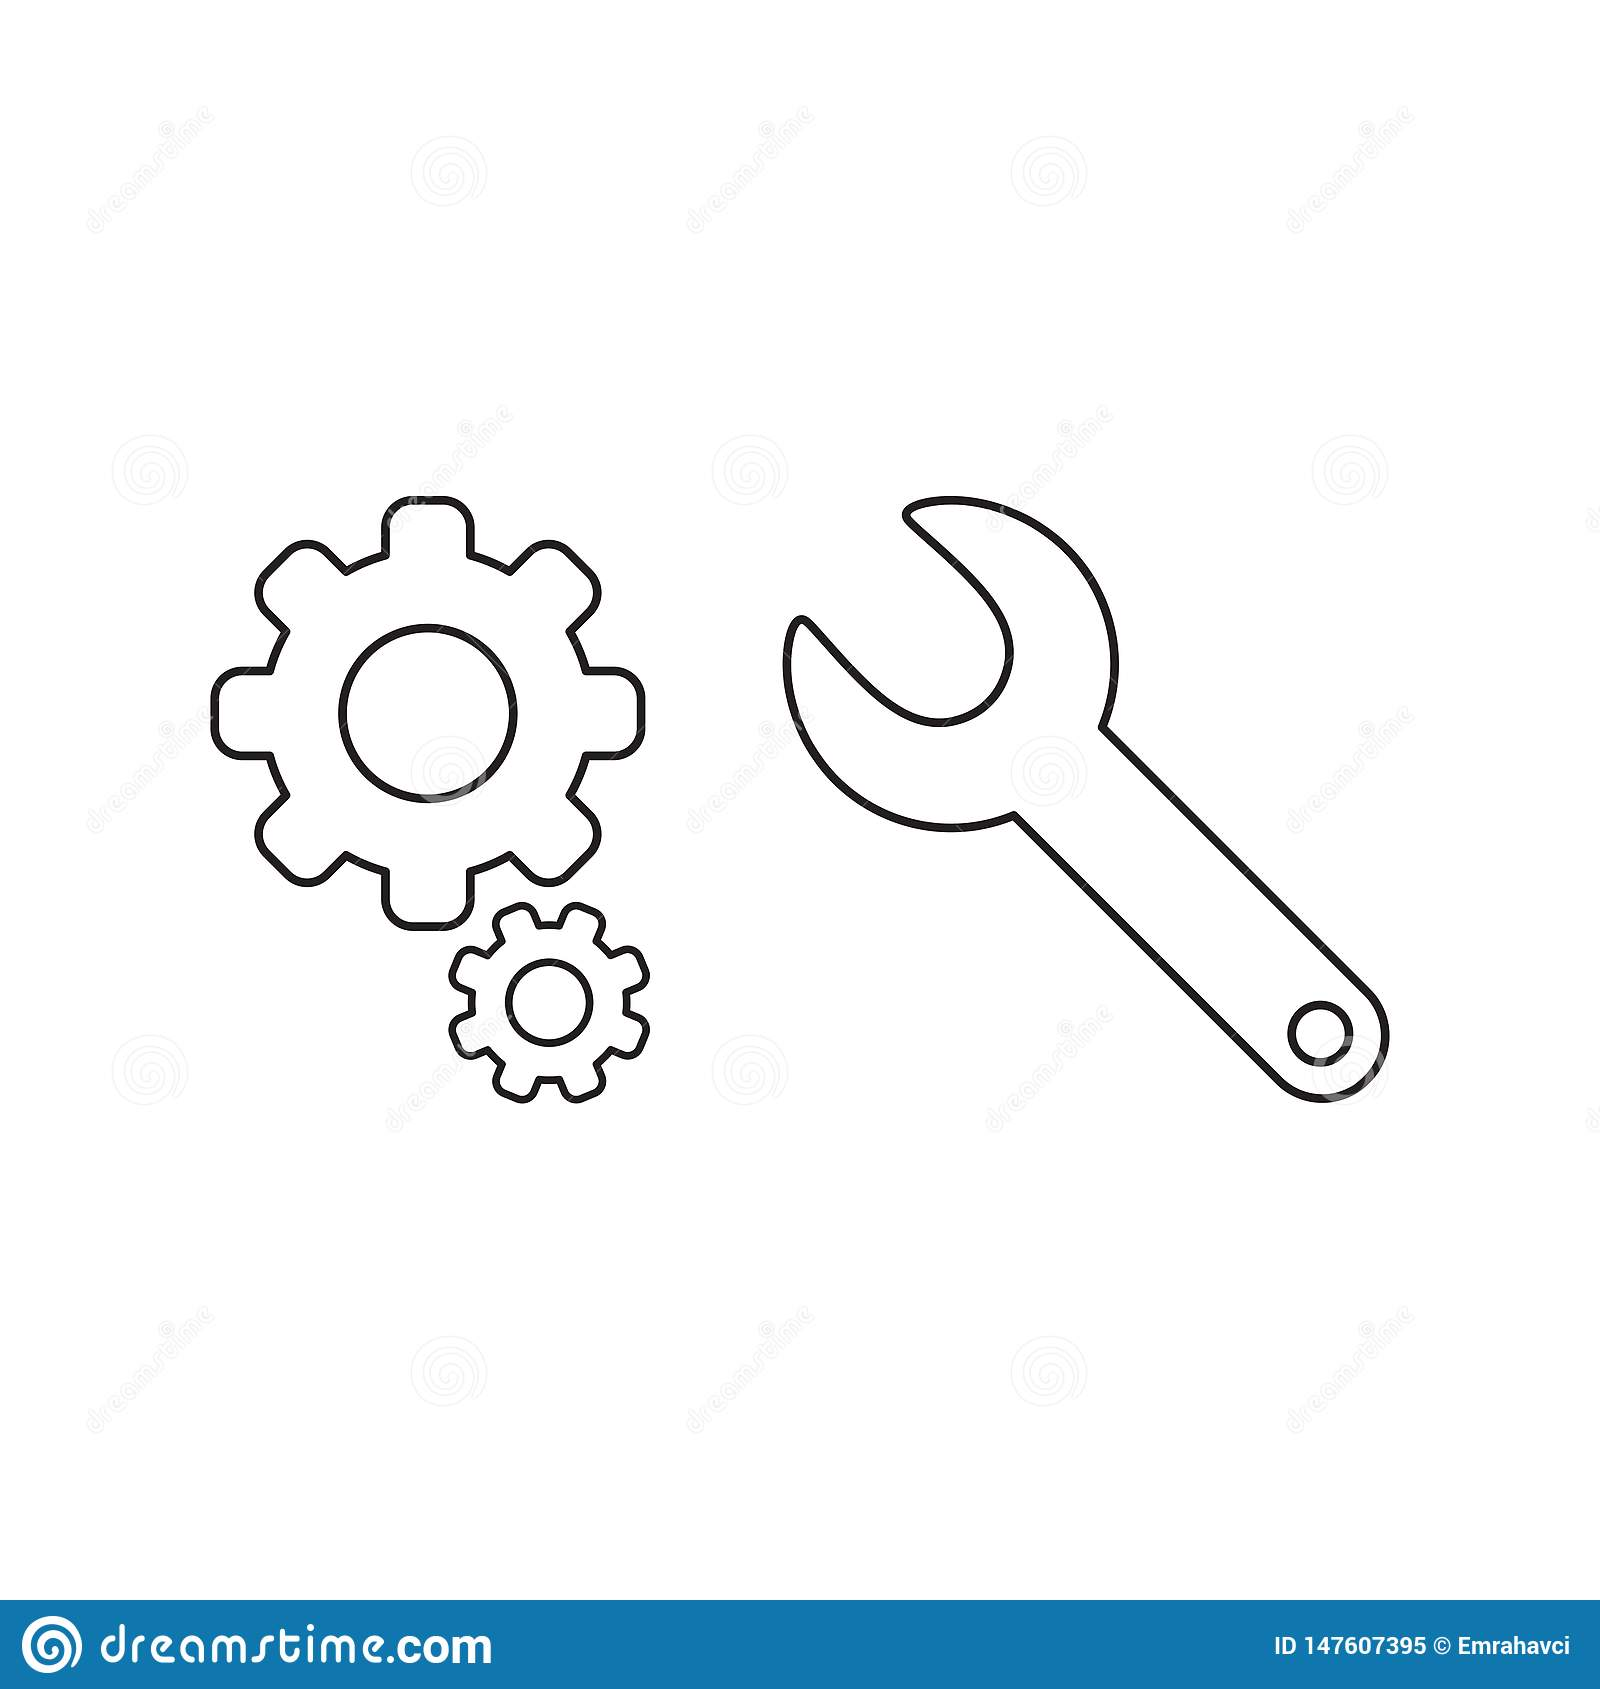 Vector illustration icon concept of gears with spanner